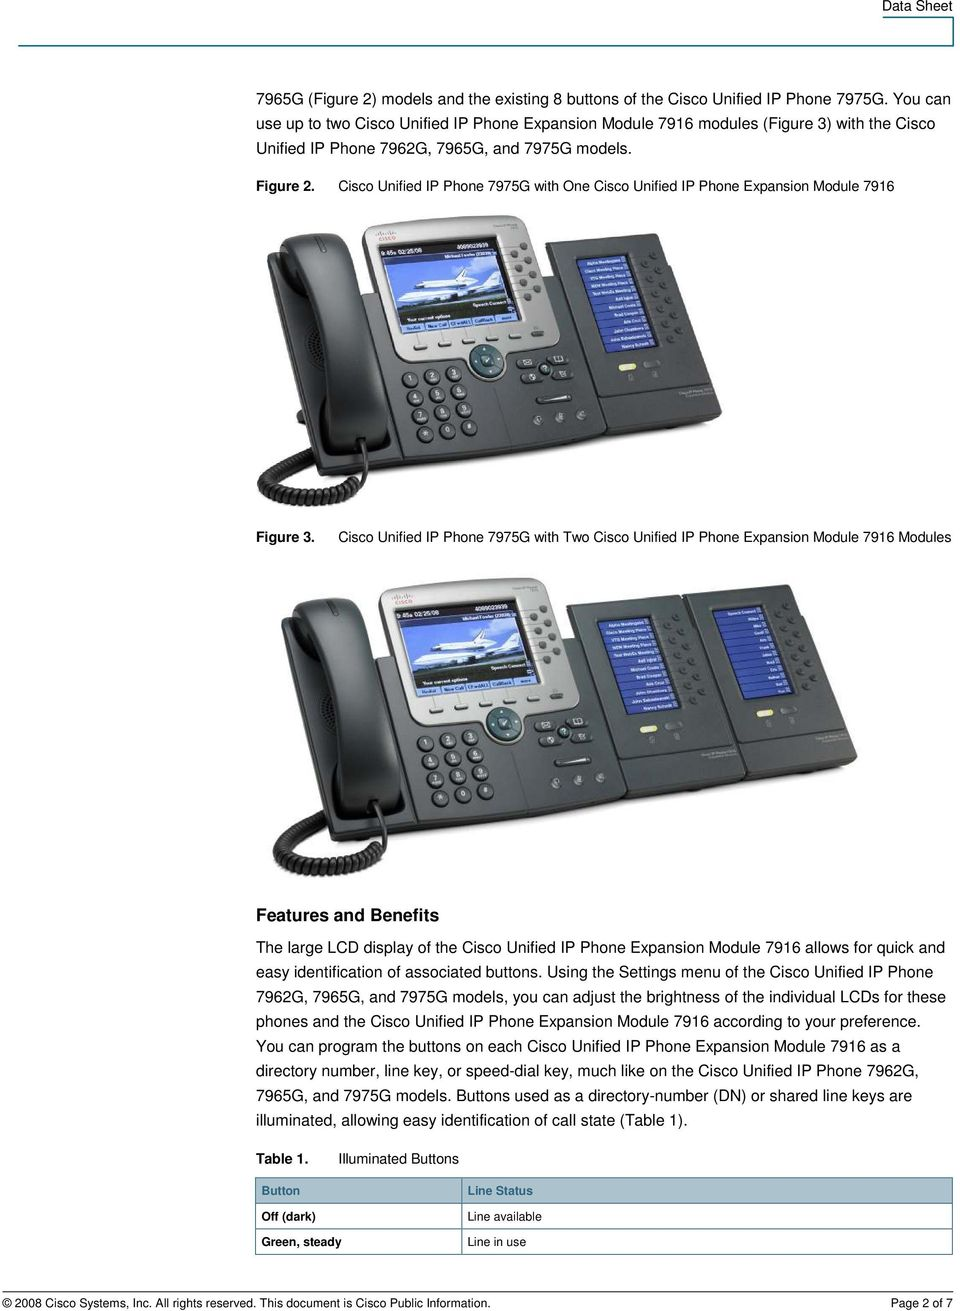 Cisco Unified IP Phone 7975G with One Cisco Unified IP Phone Expansion Module 7916 Figure 3.